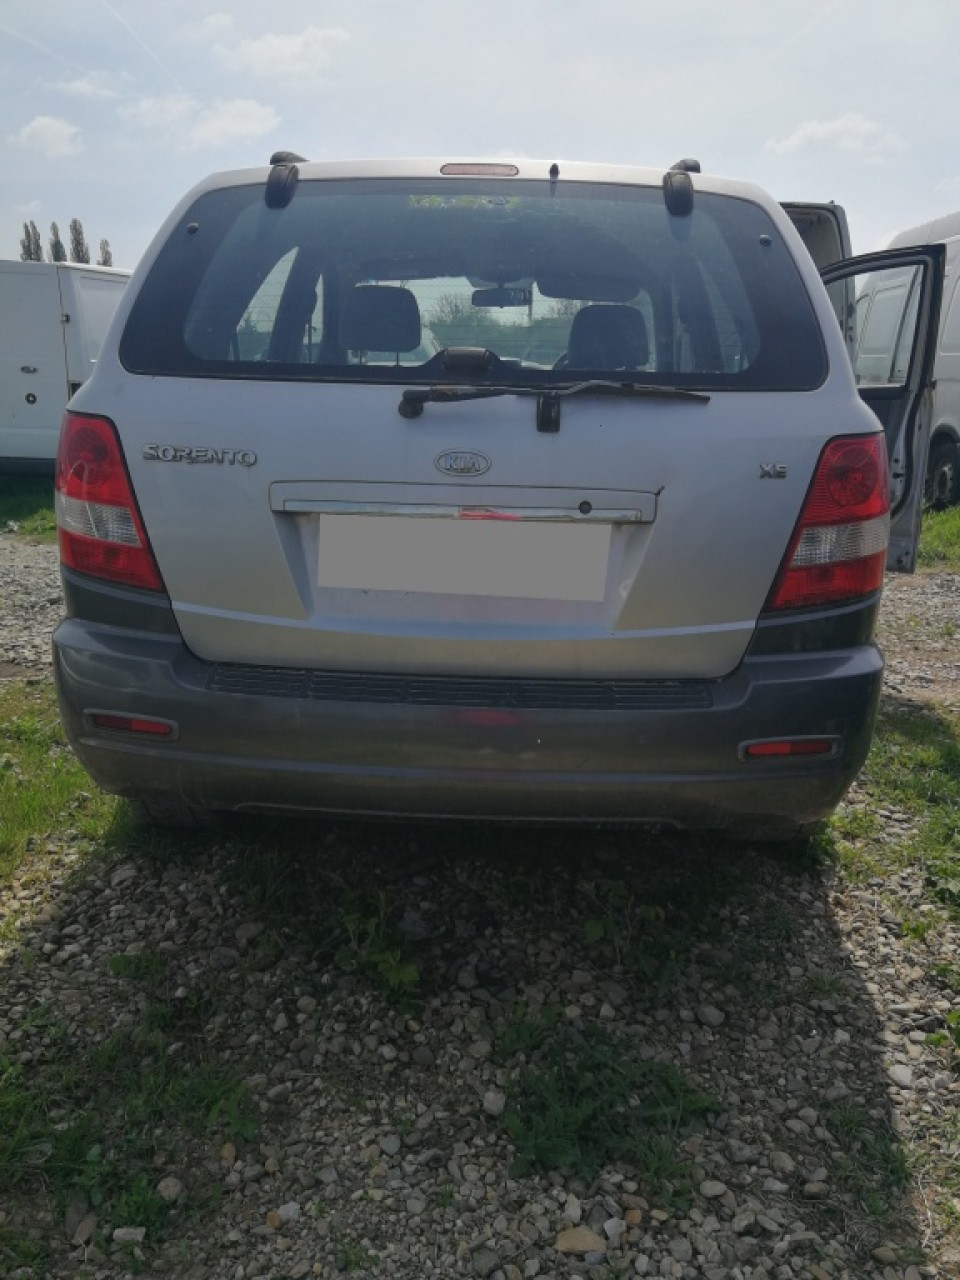 Intercooler Kia Sorento 2004 Hatchback 2.5